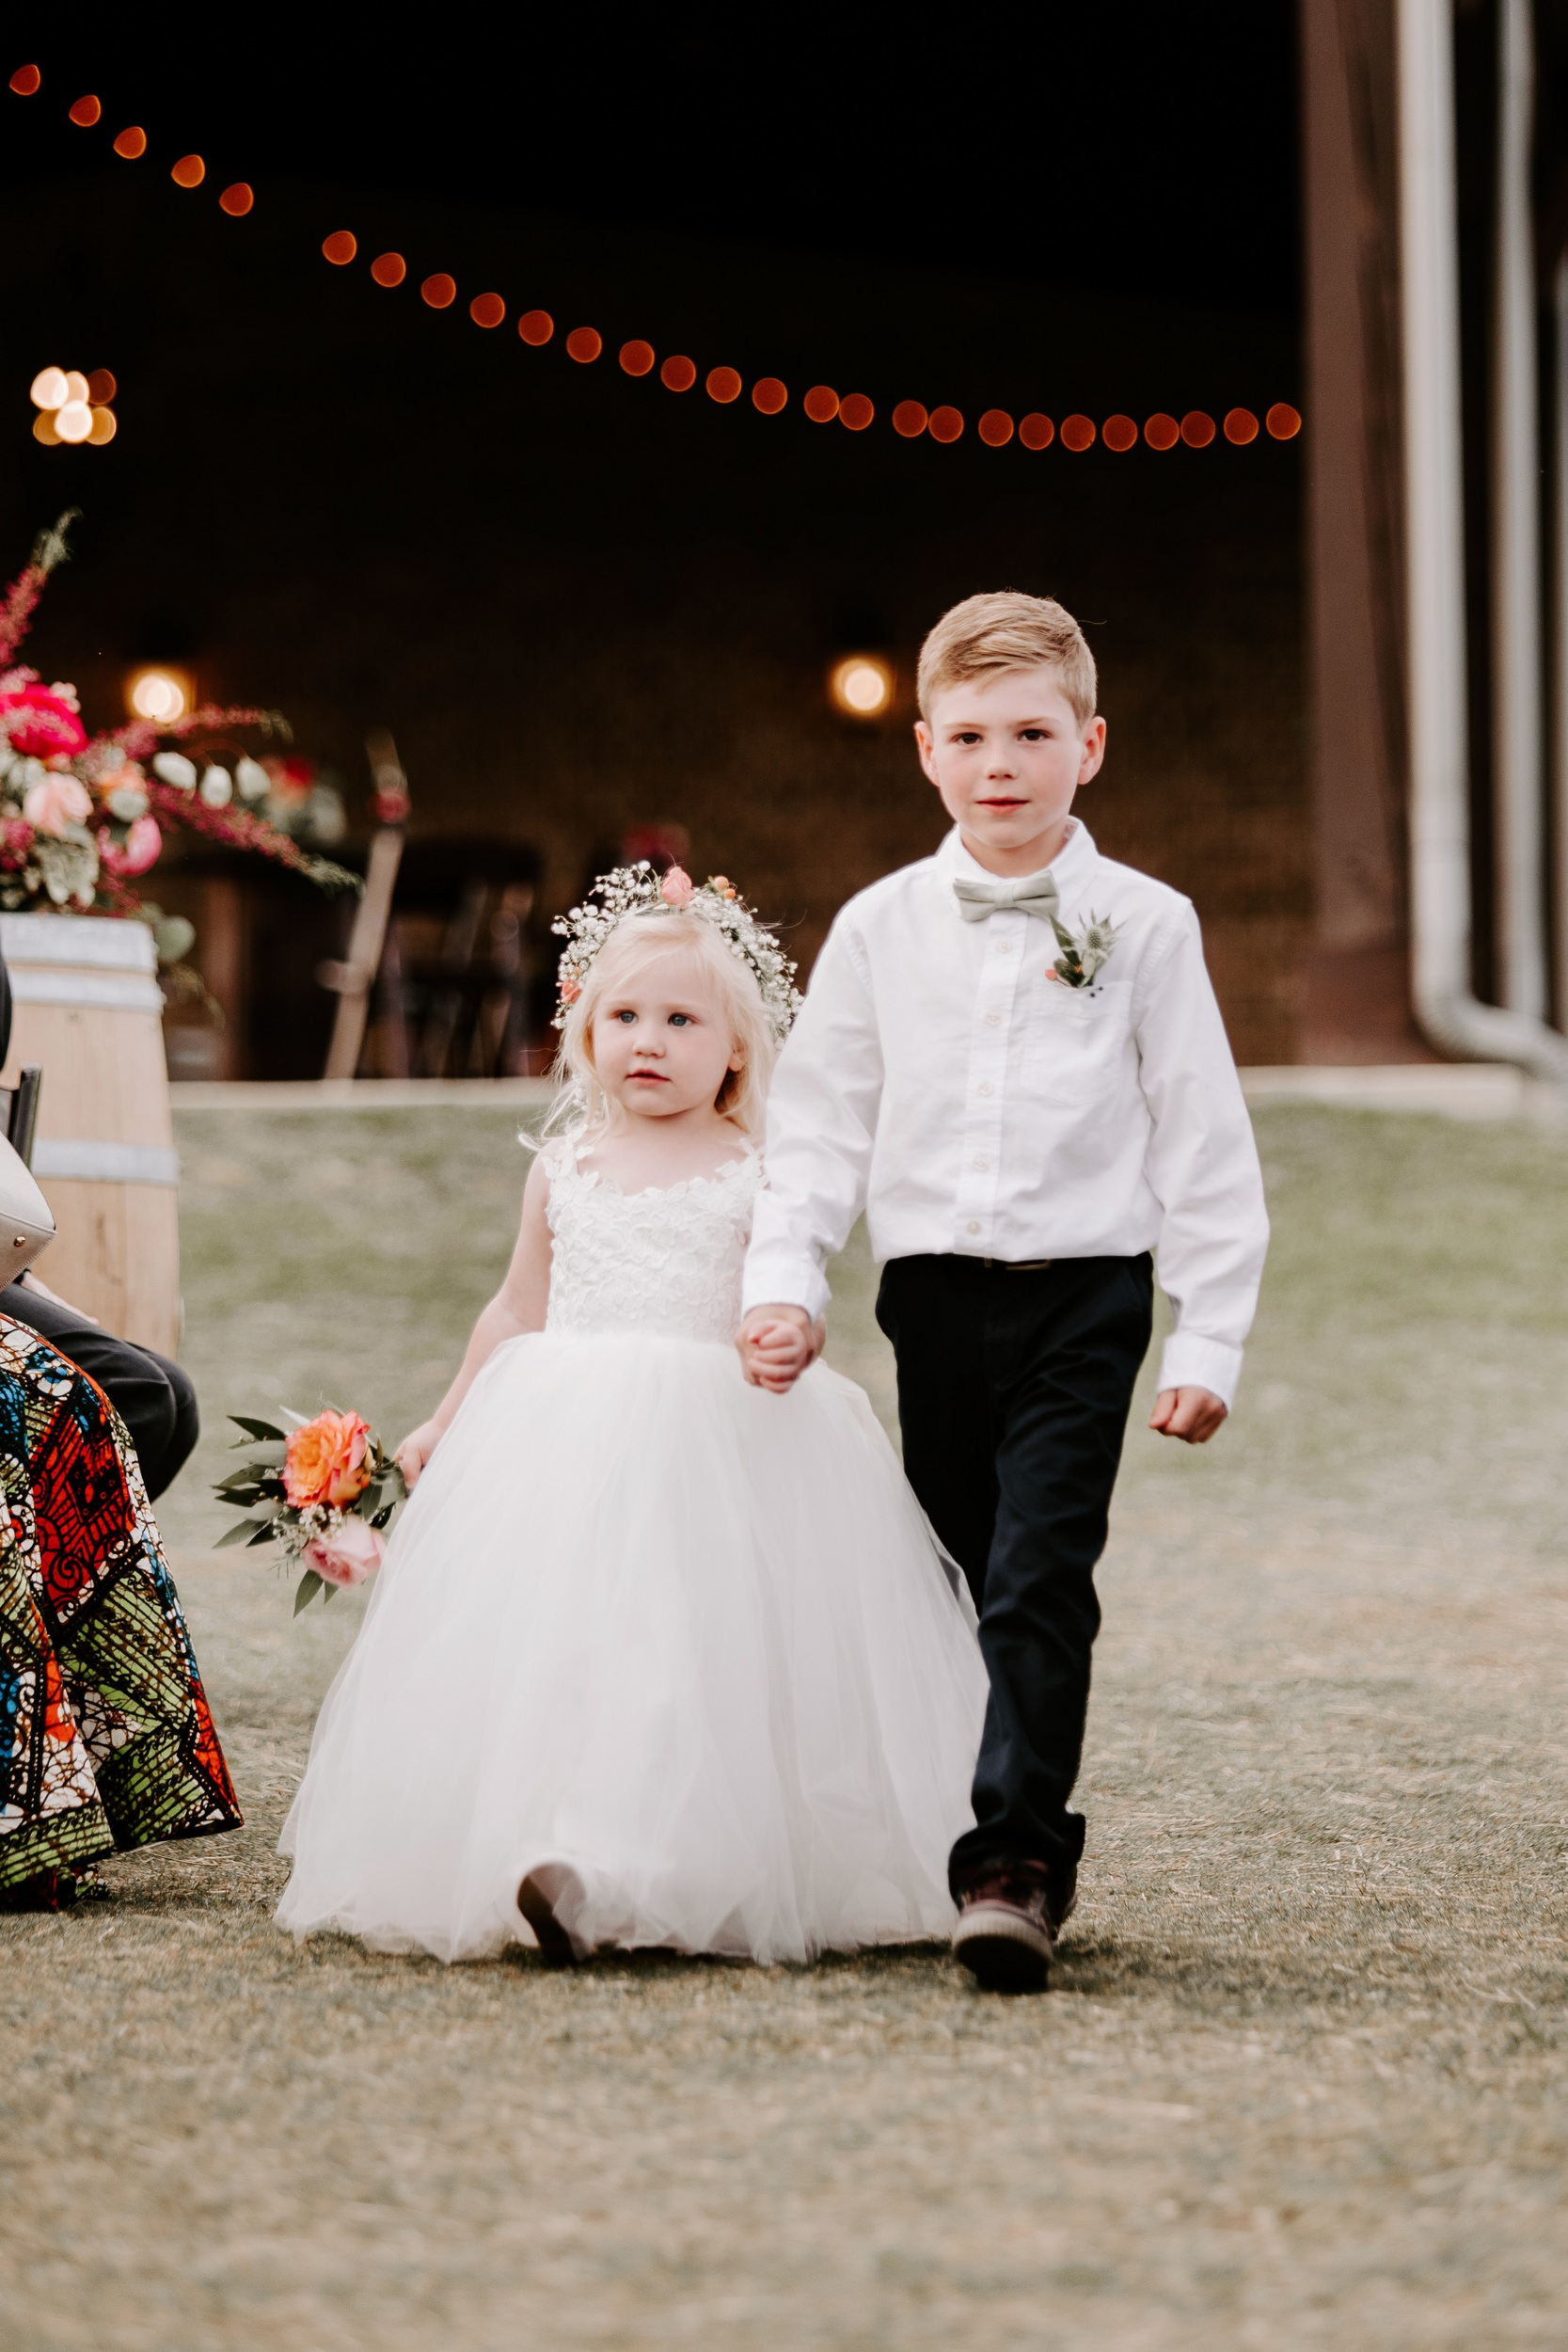 1-MADDY + PATRICK WEDDING_HALEY RYNN RINGO_rent my dust_c (45).jpg